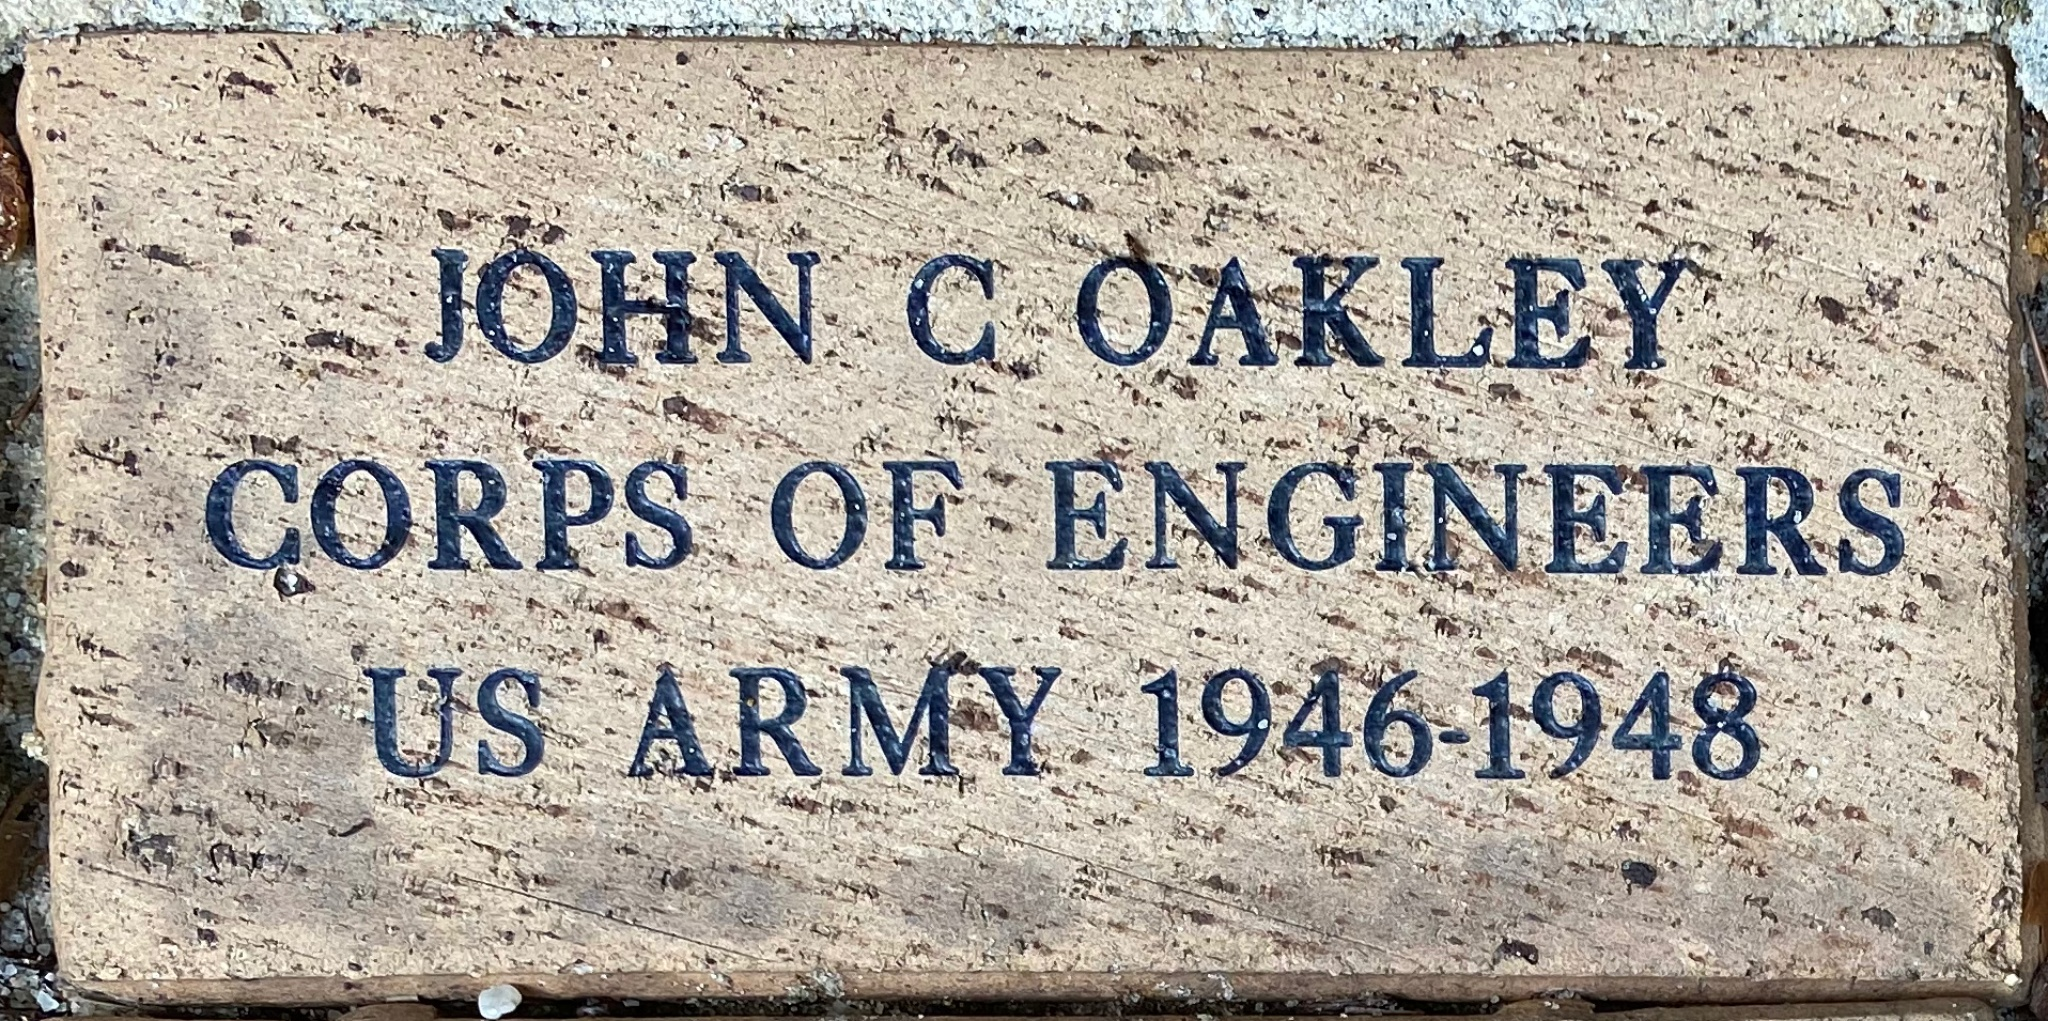 JOHN C OAKLEY CORPS OF ENGINEERS US ARMY 1946-1948